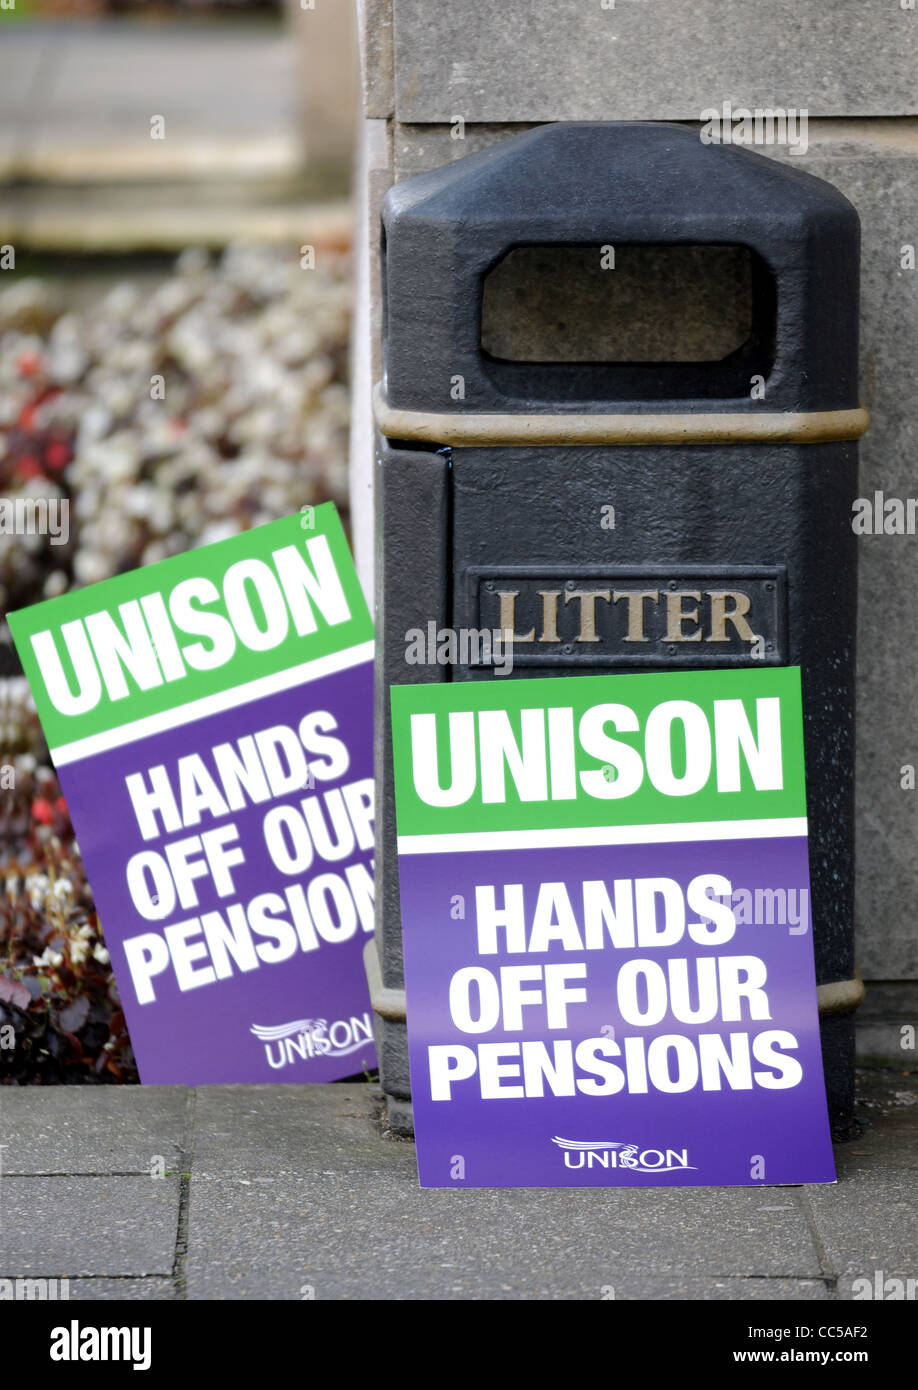 UNISON union placards by rubbish bin - Stock Image